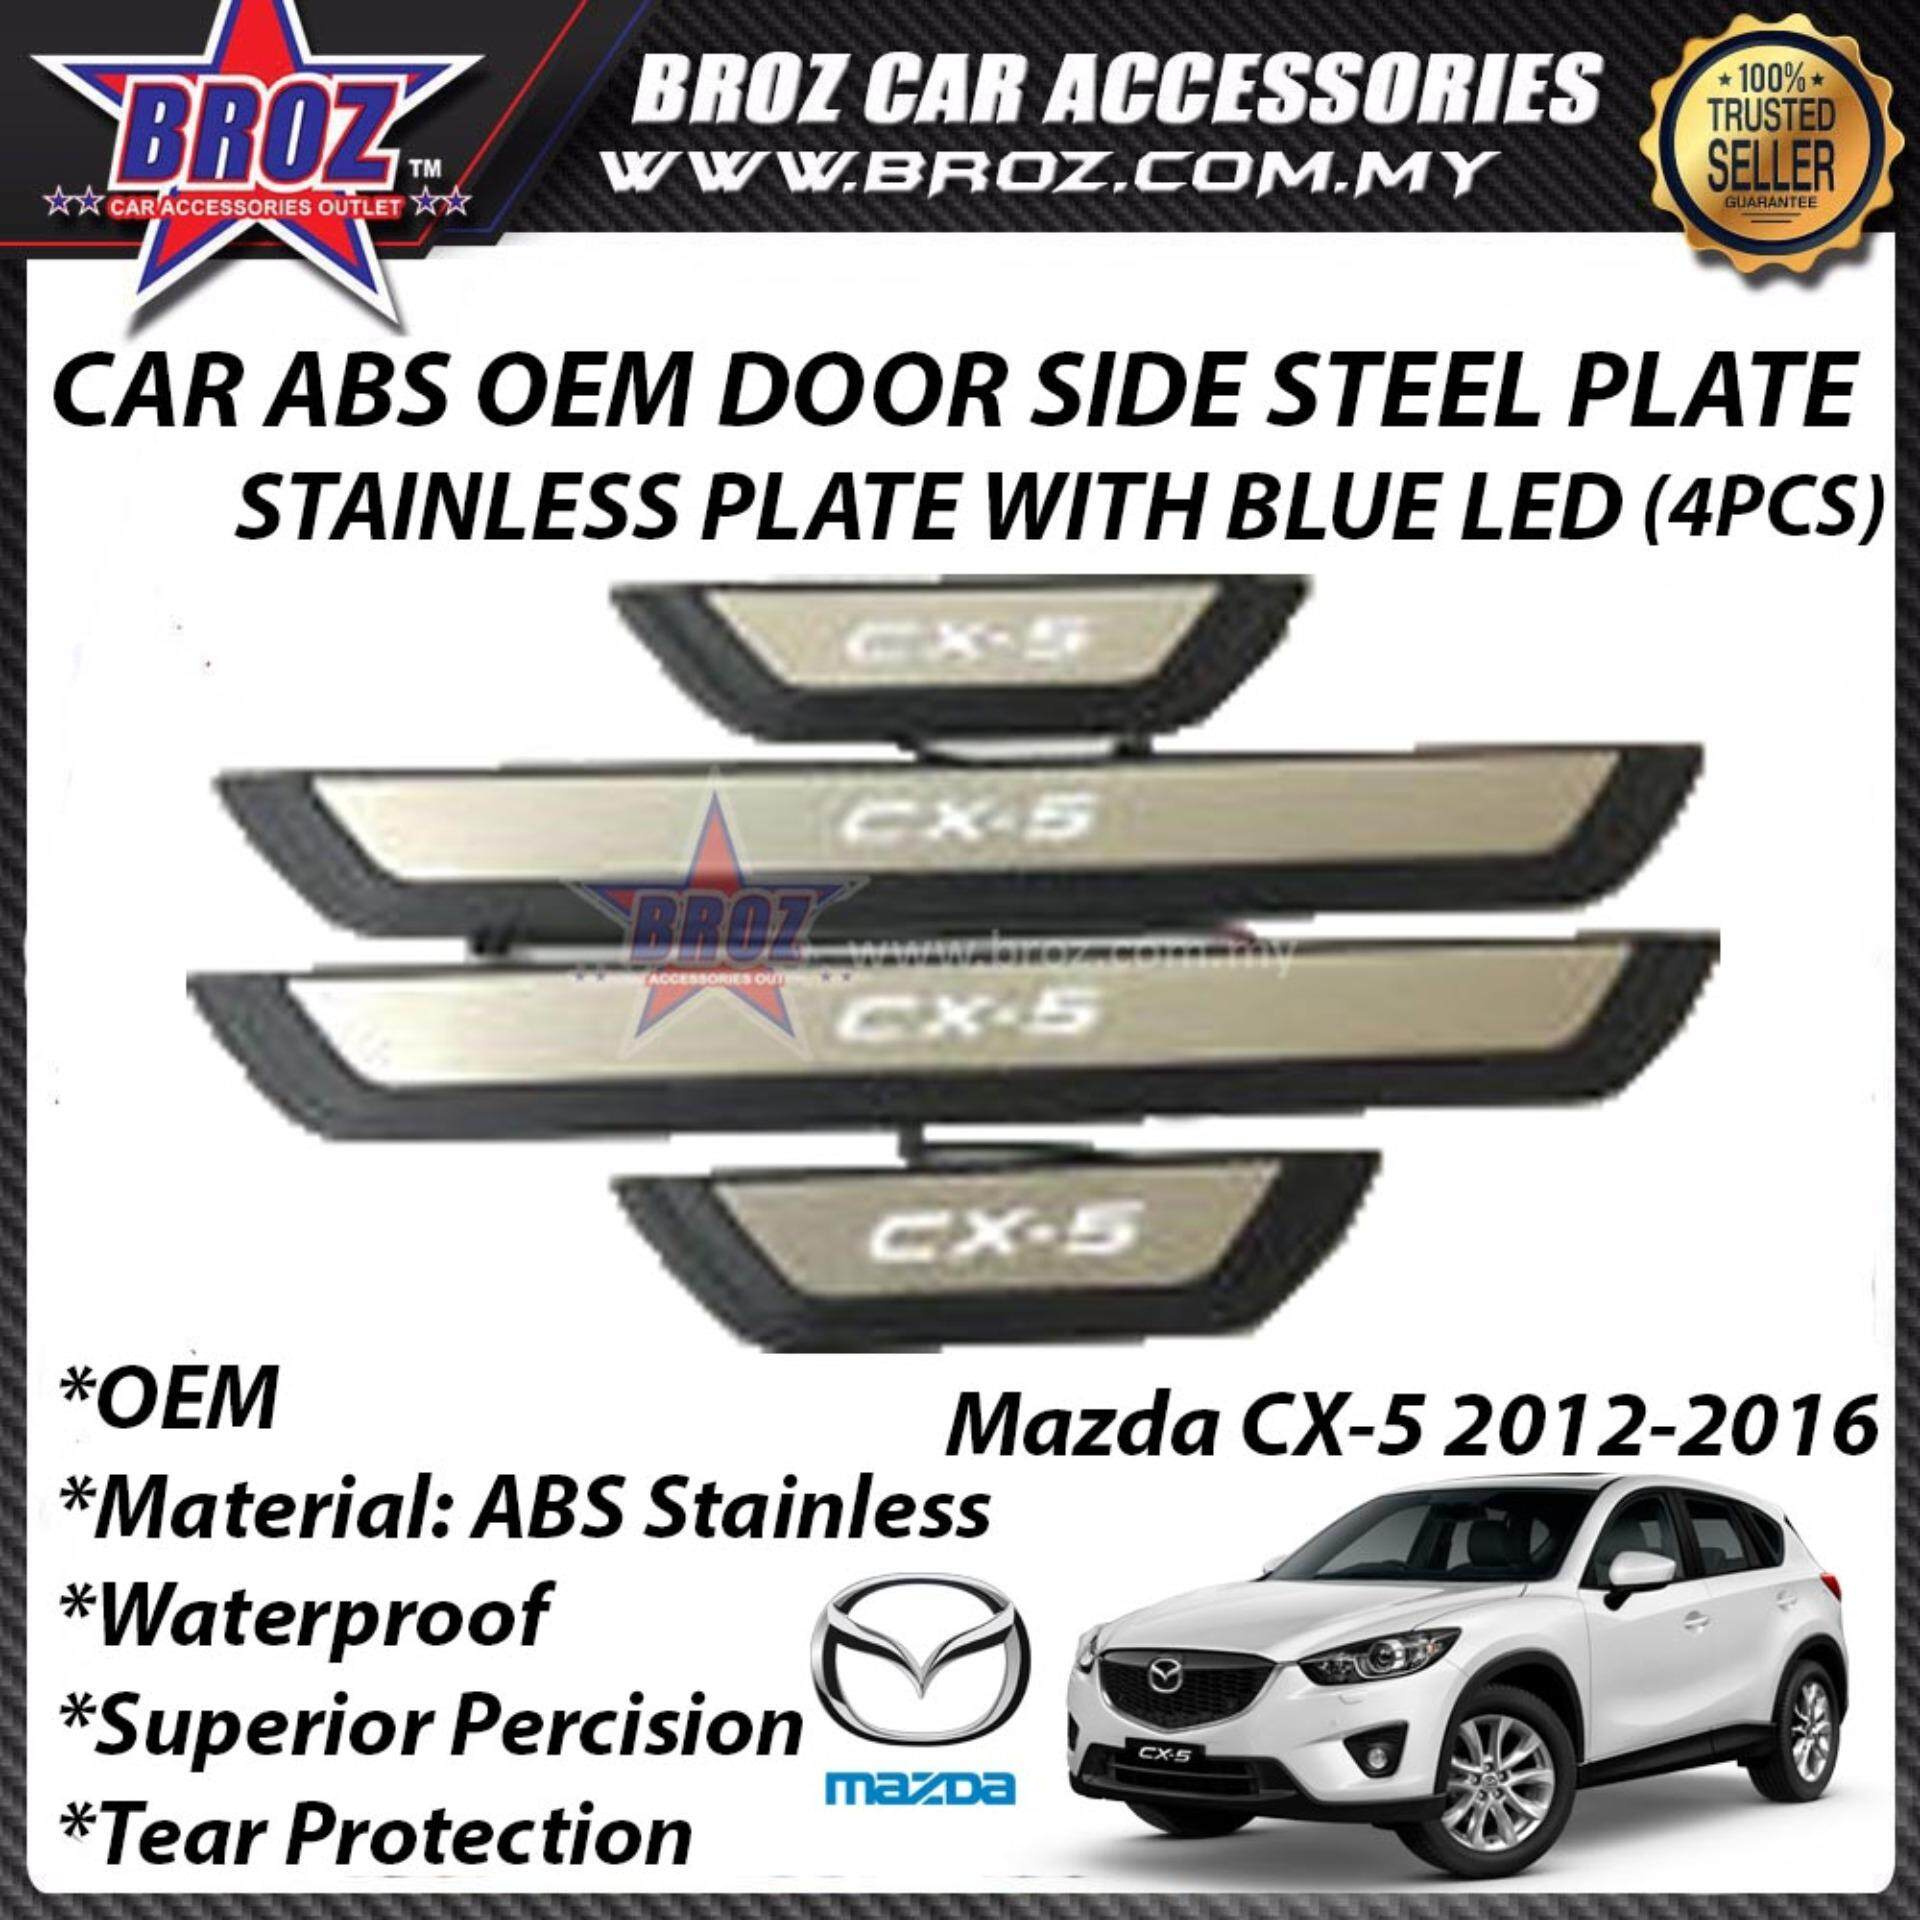 Broz Mazda CX-5 2012-2016 ABS Side Steel Plate/Door Side Step With Led Blue